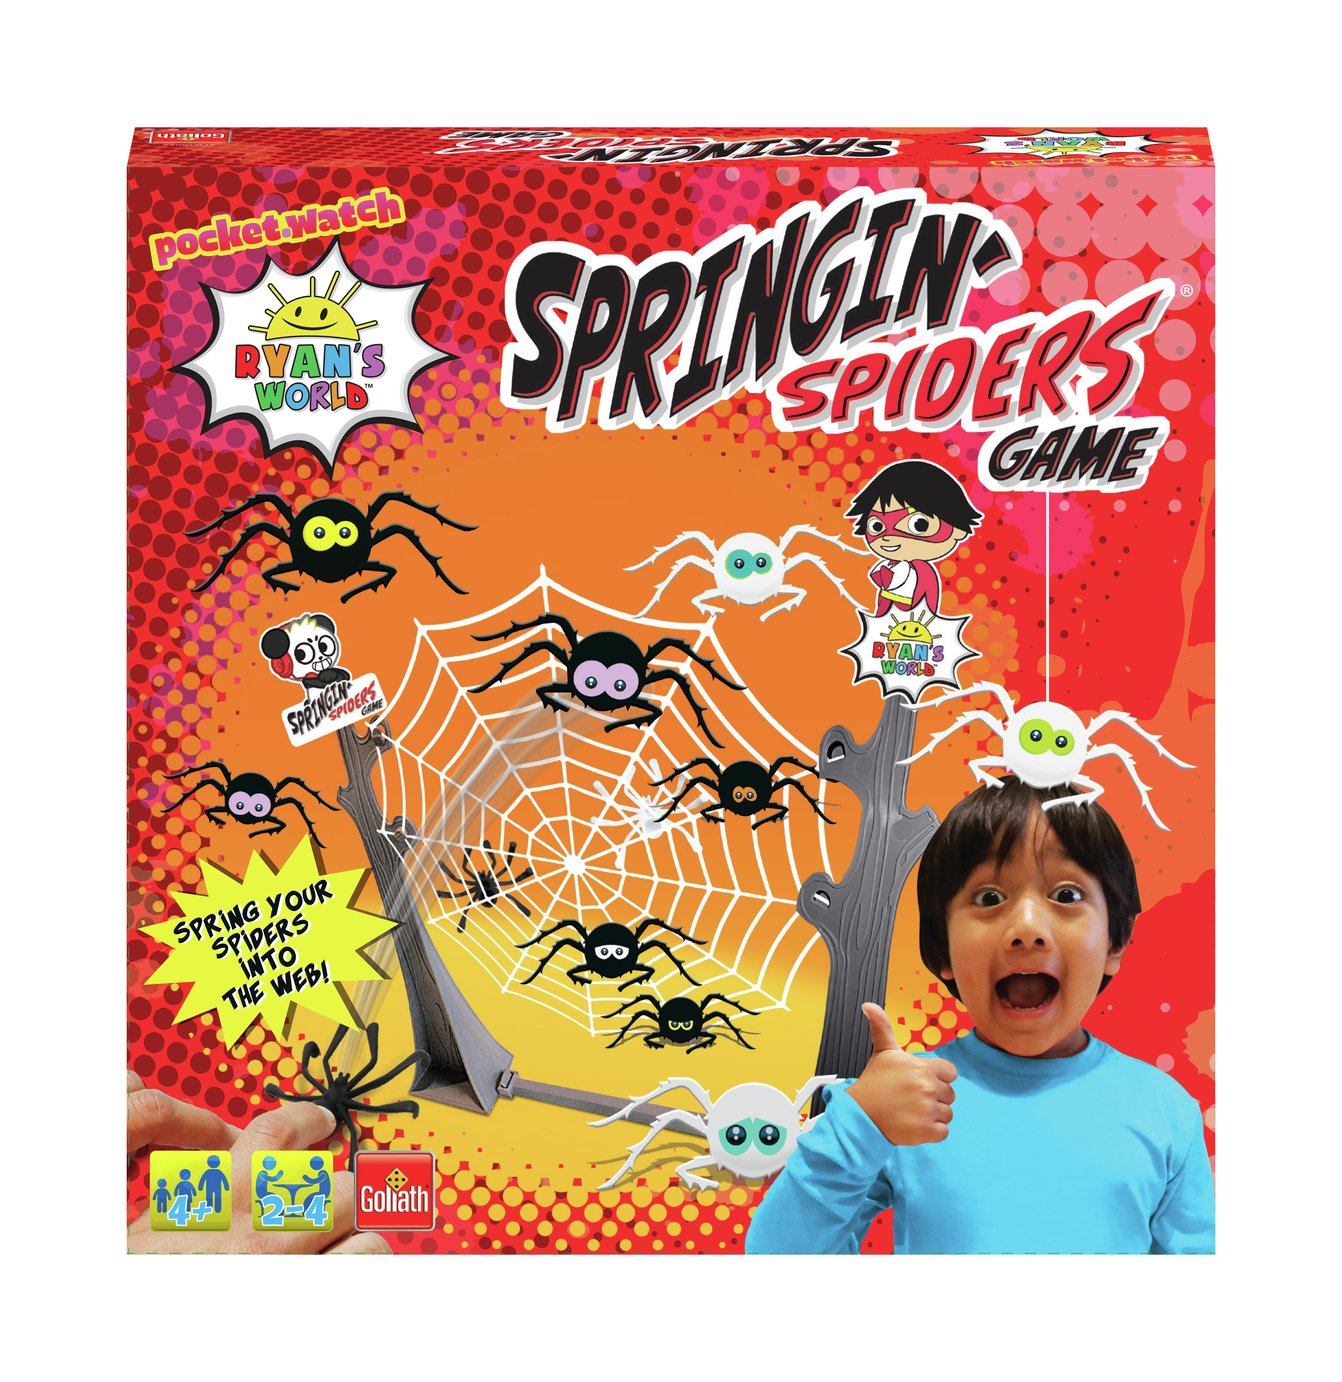 Goliath Games Ryan's World Springing Spiders